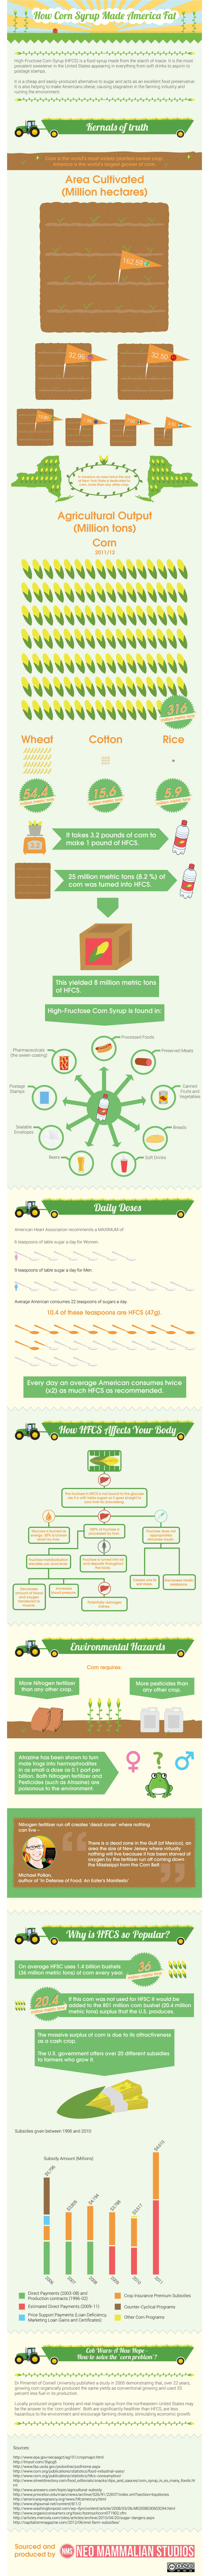 corn syrup Infographic: How Corn Syrup Made America FAT